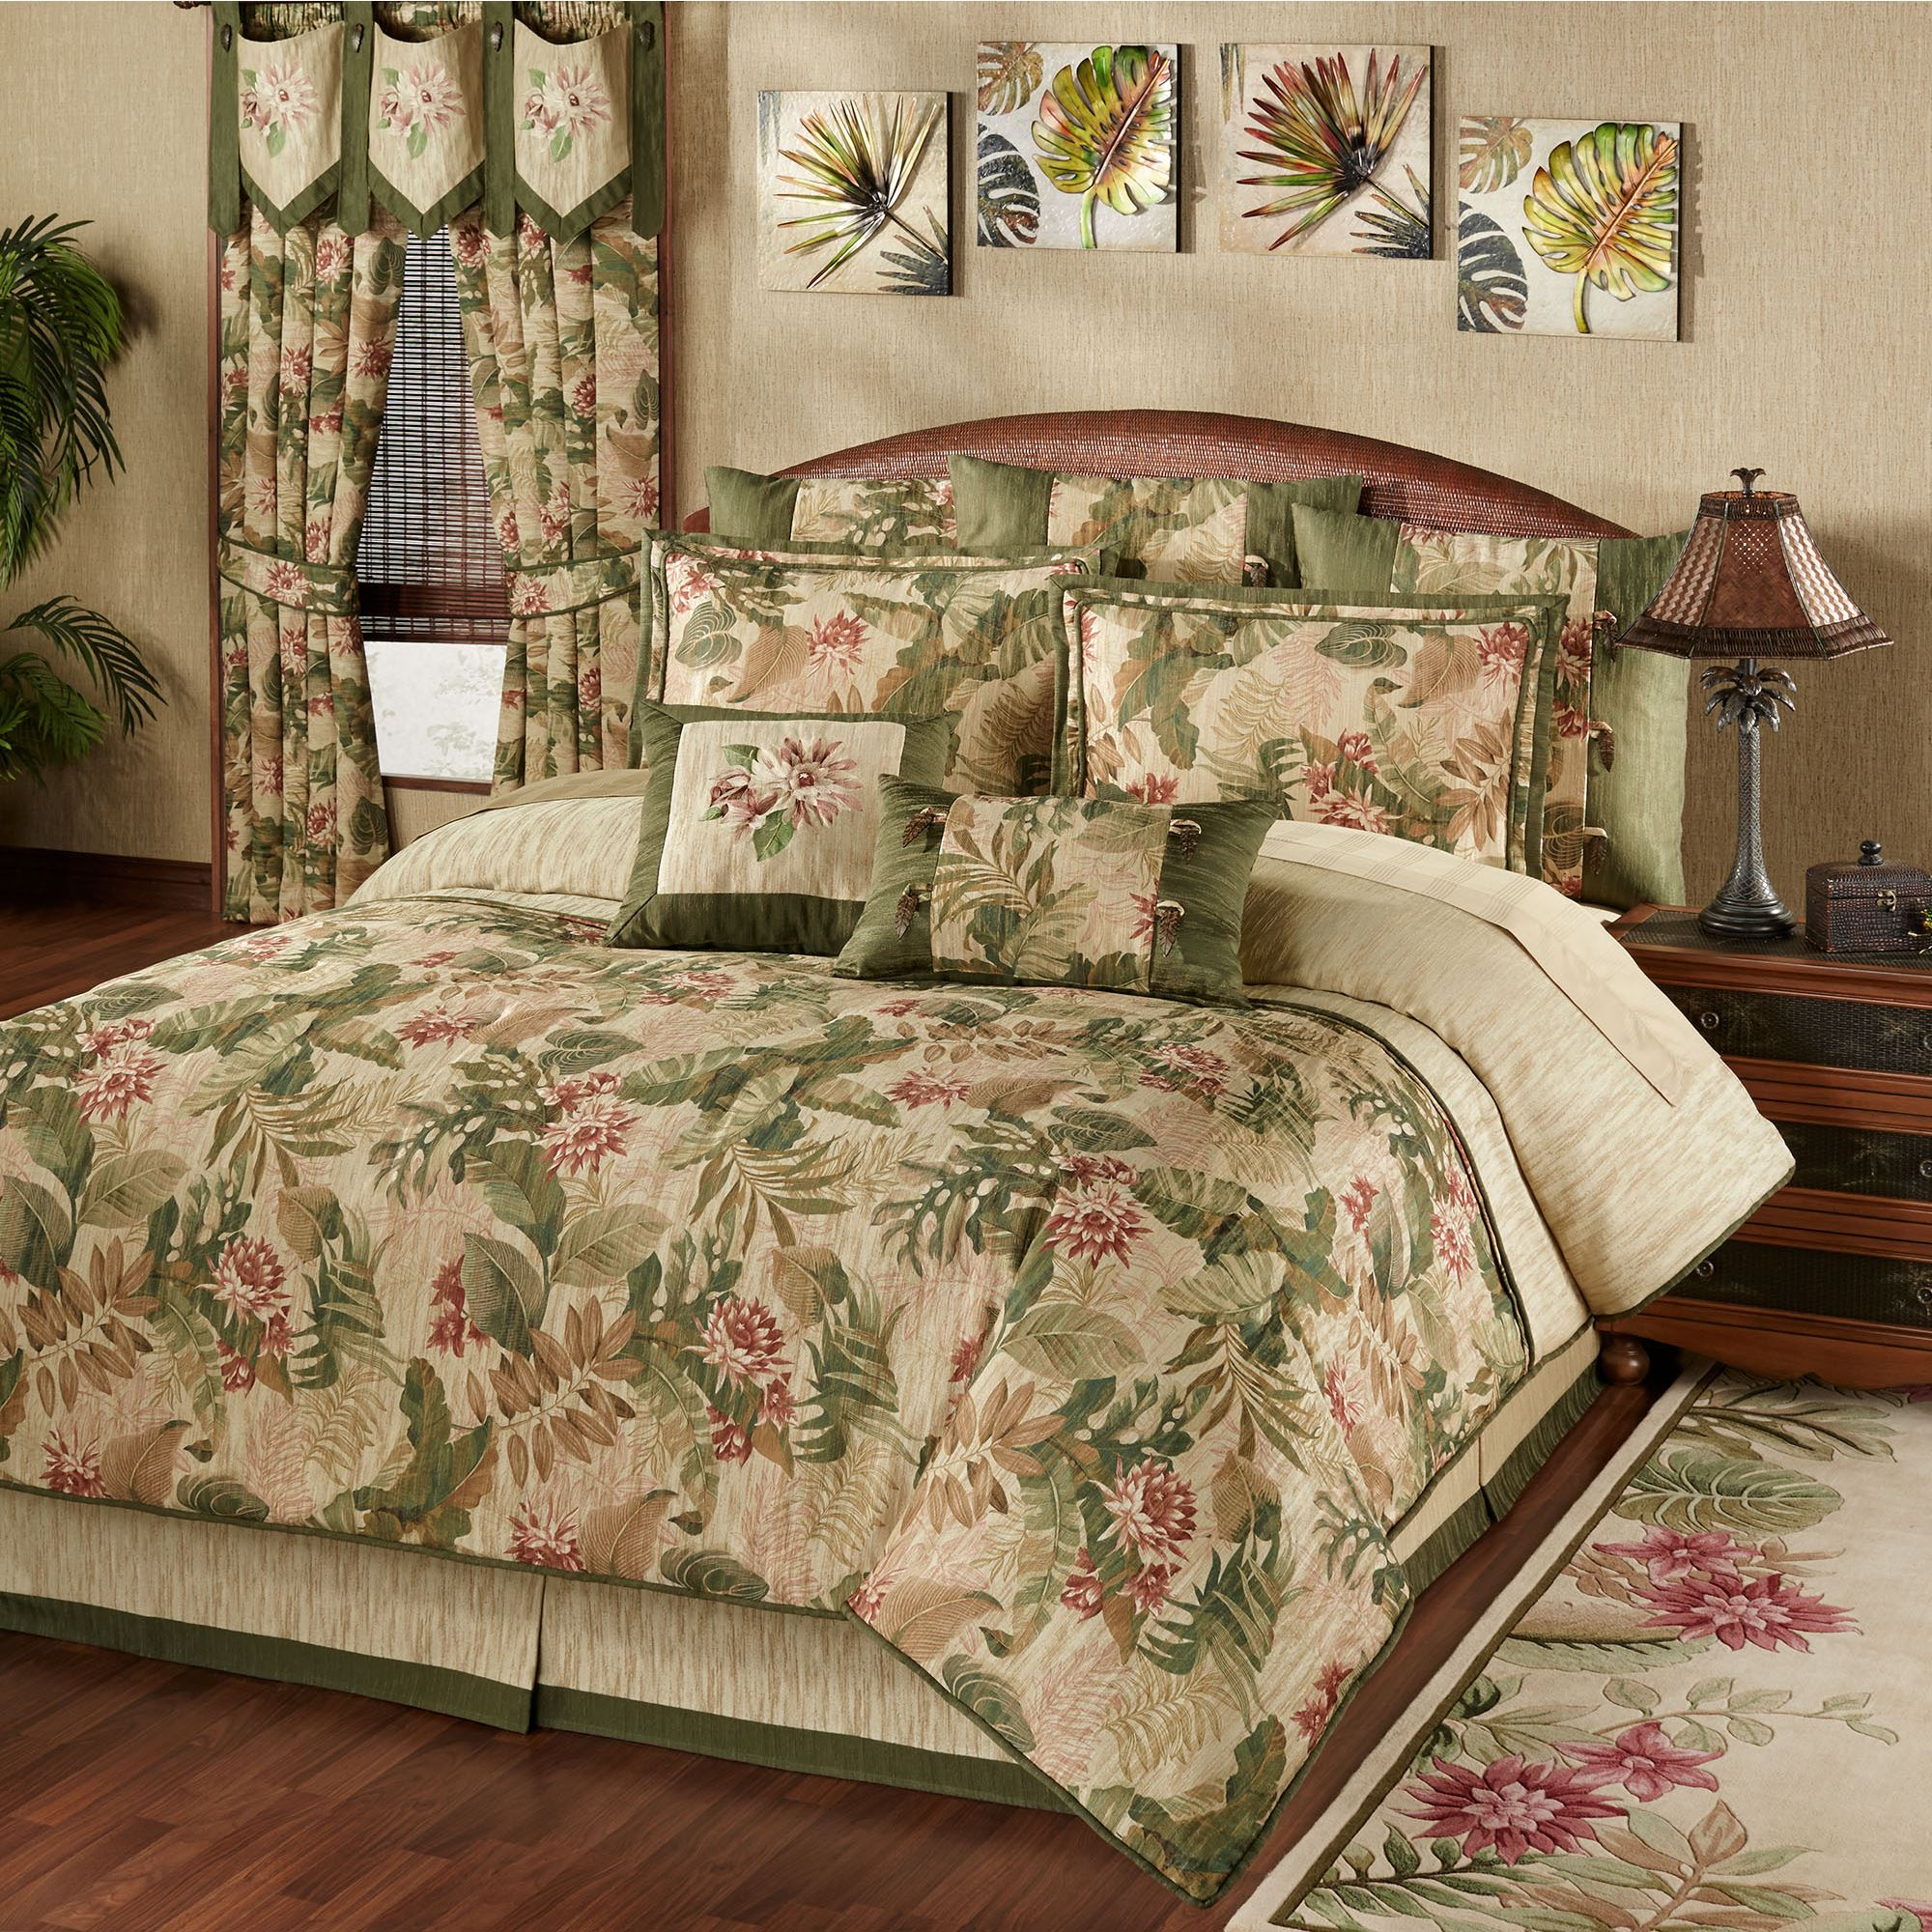 florida winds decorative bed bealls kona hide src layer tropic th bedding yyy set tropical online comforter thumbnailimg